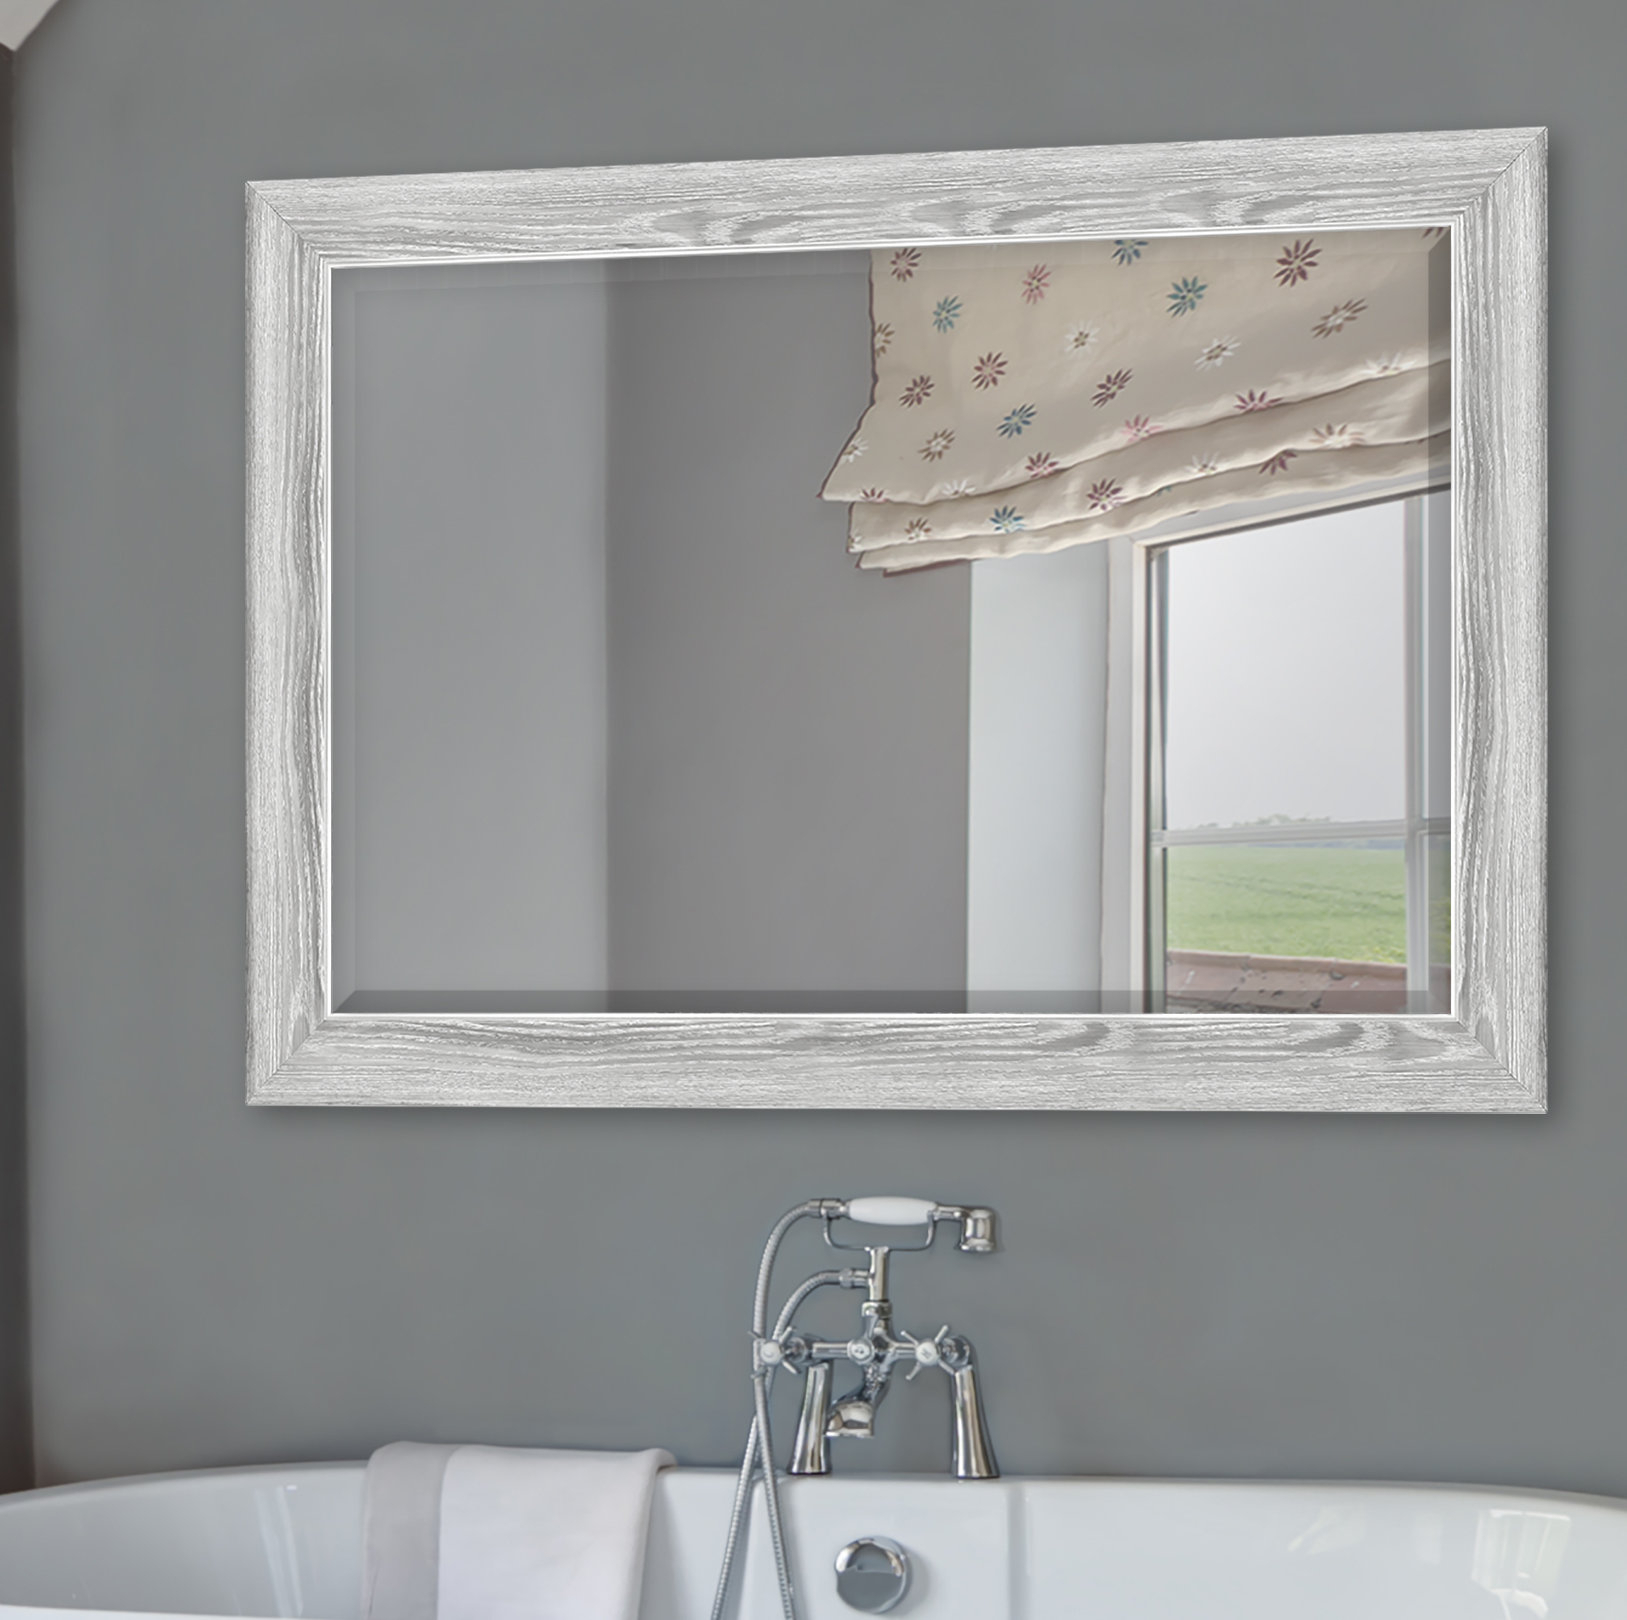 Yeung Curvature Bathroom/vanity Mirror With Regard To Landover Rustic Distressed Bathroom/vanity Mirrors (View 30 of 30)